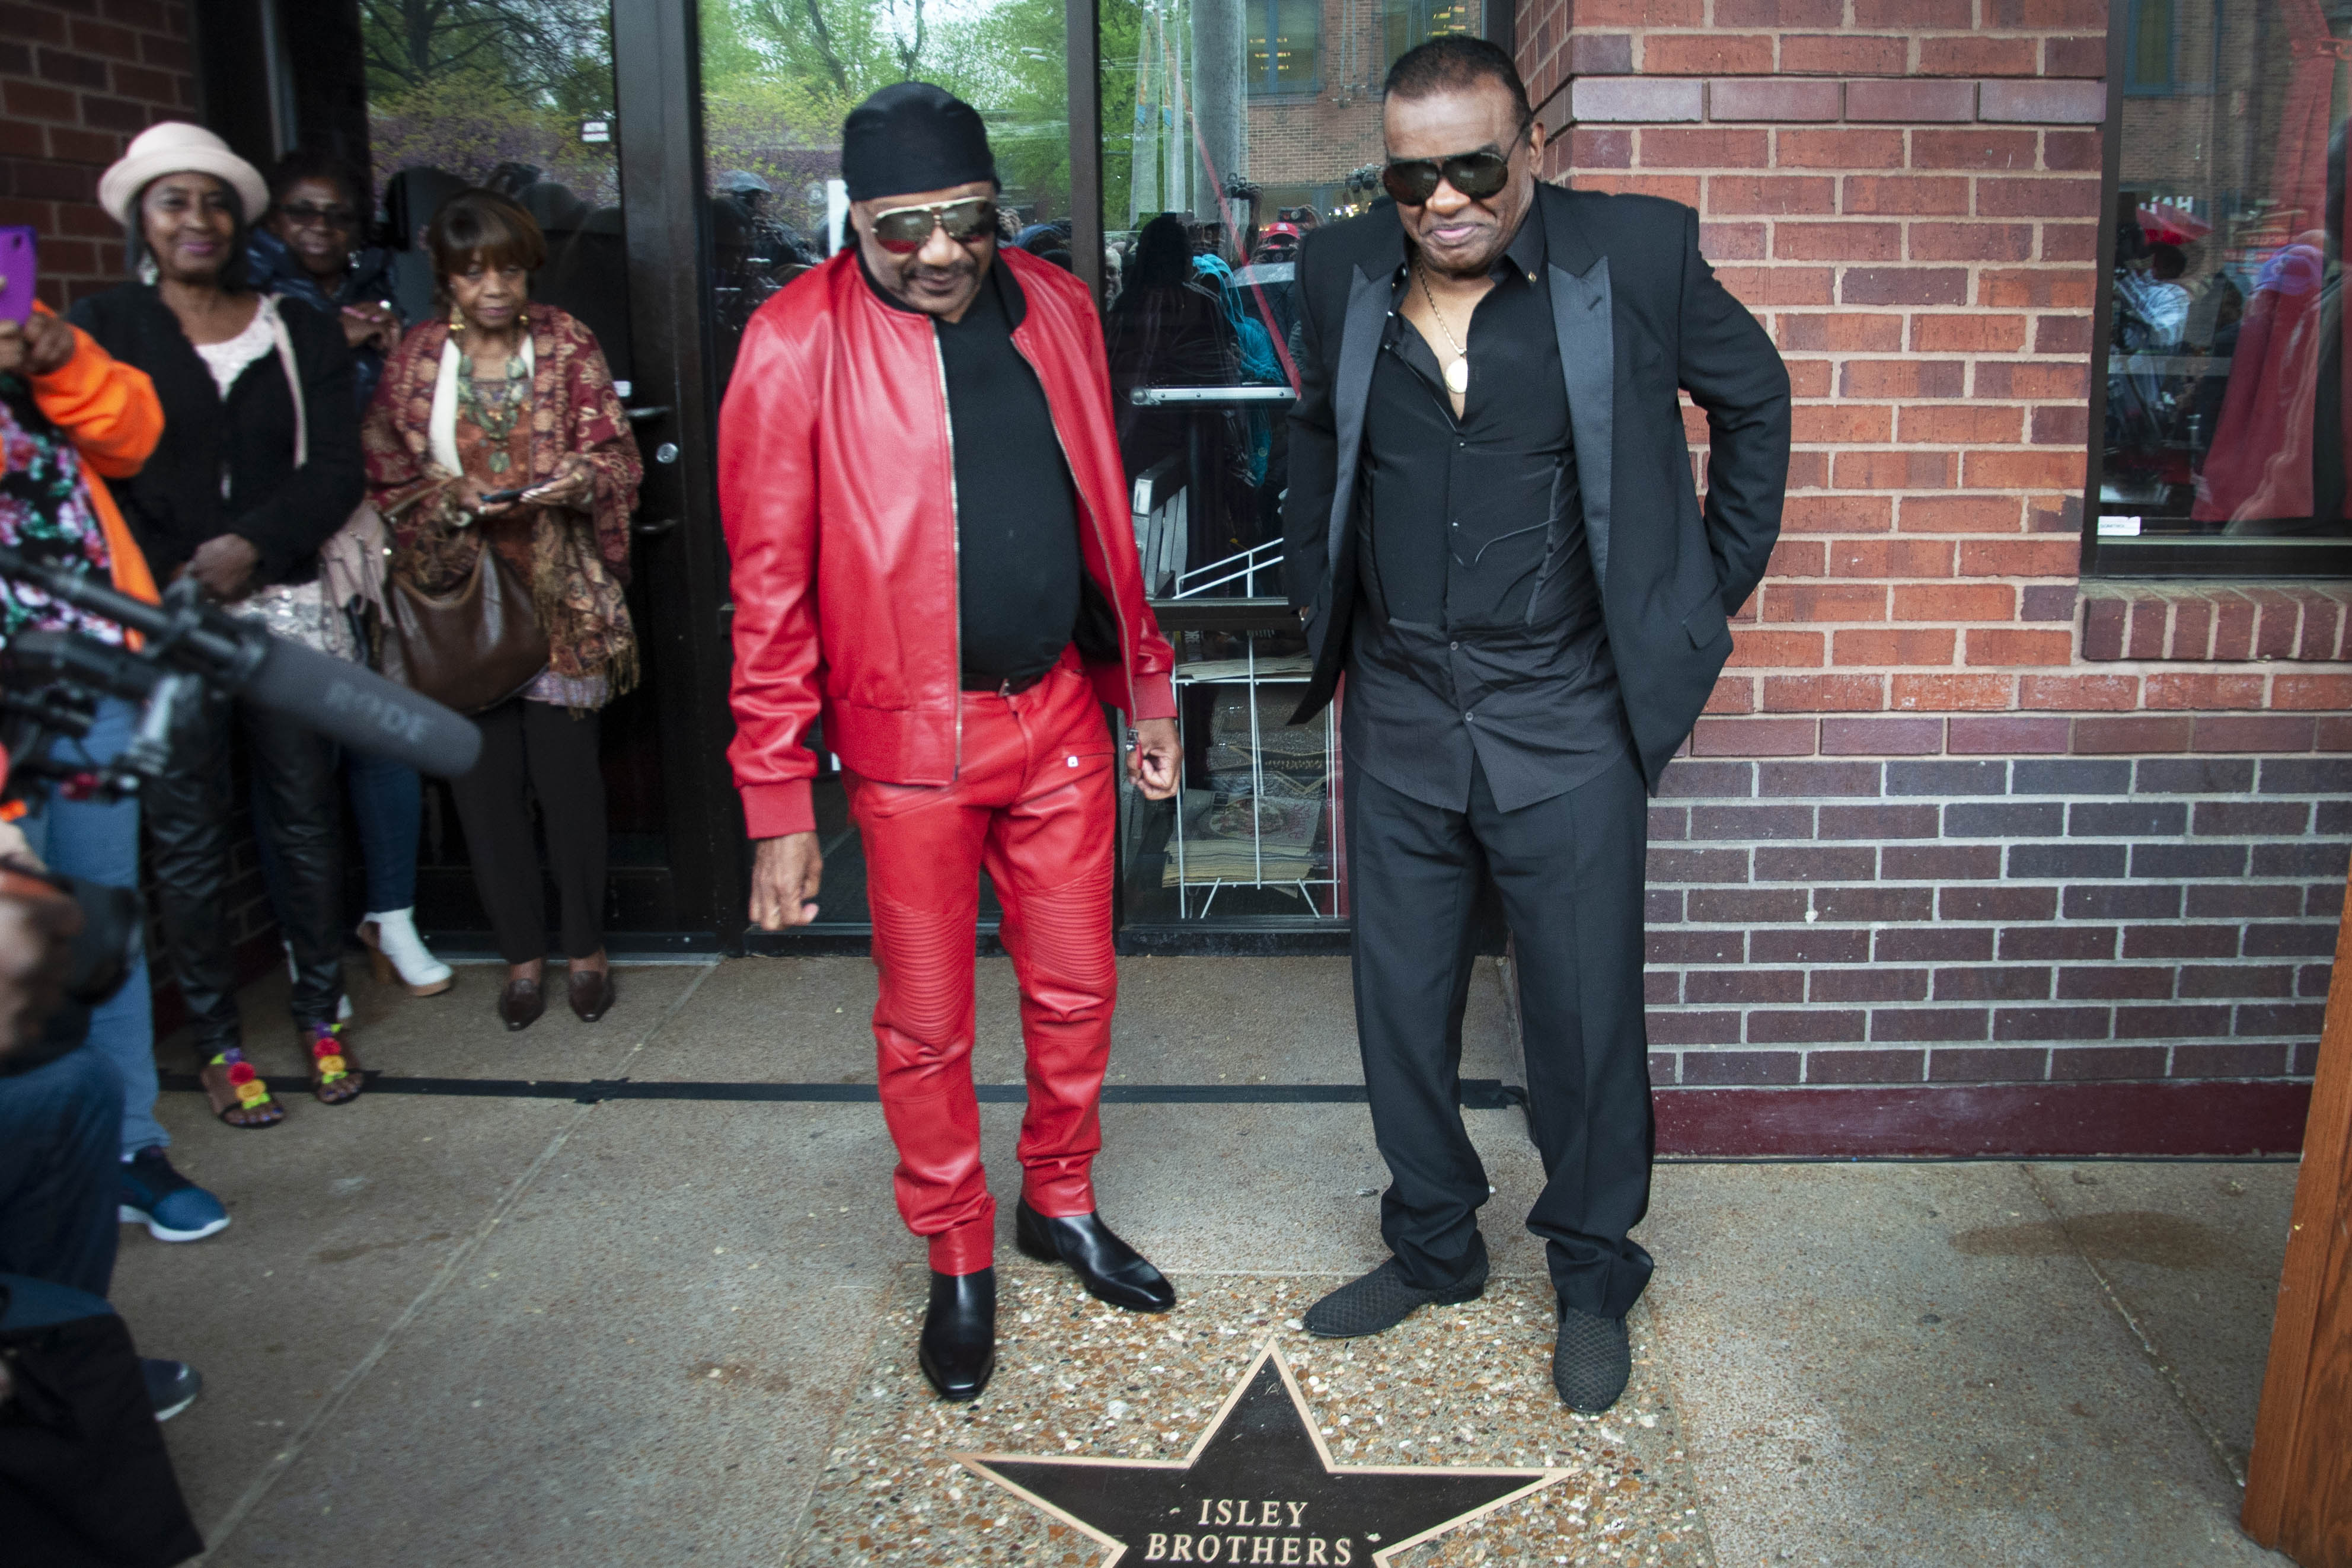 Isley Brothers Walk of Fame Star. Photo by KE Luther.